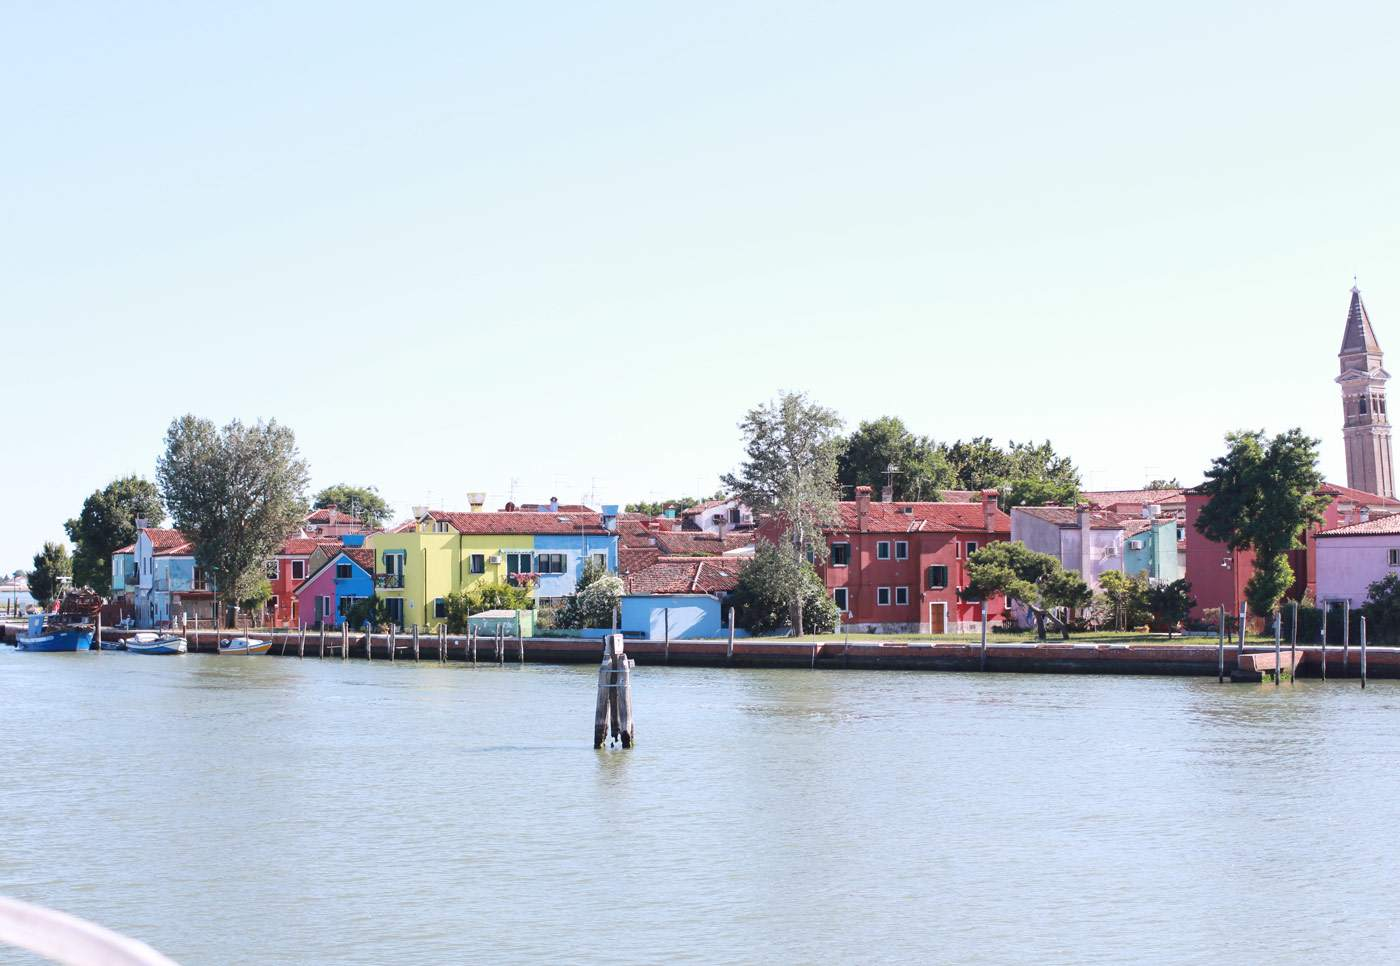 venice-italy-burano-island-venezia-travel-blogger-photography